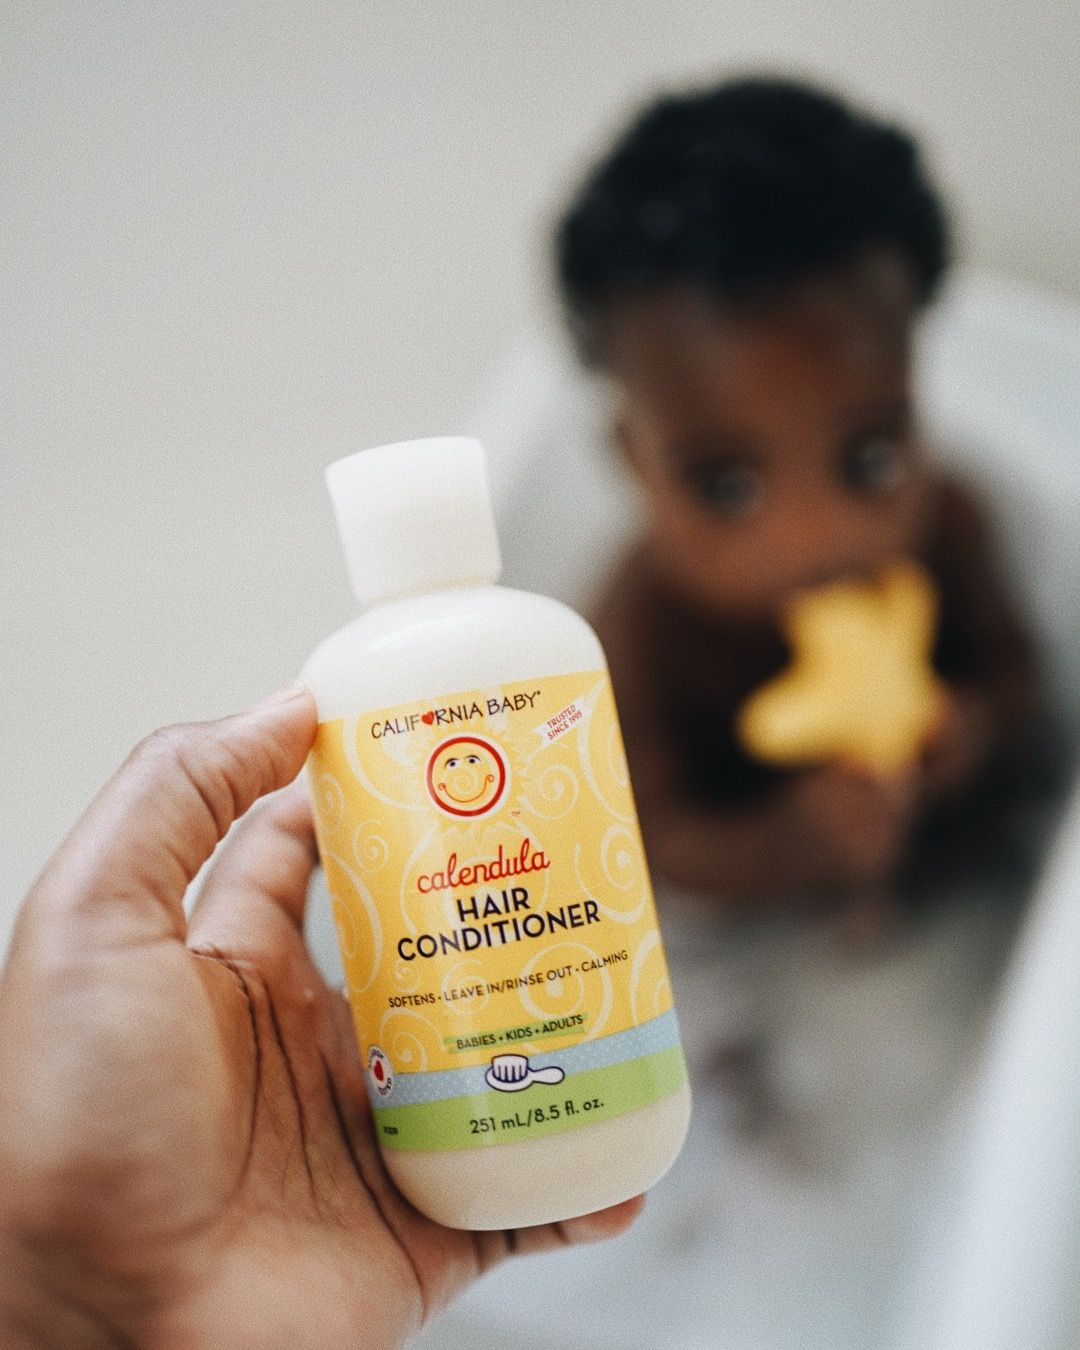 California Baby Calming Massage Oil By California Baby 15 70 California Baby S Calming Loving Massage Oil Is Composed Of Quality Vegetable Oils Of Aprico